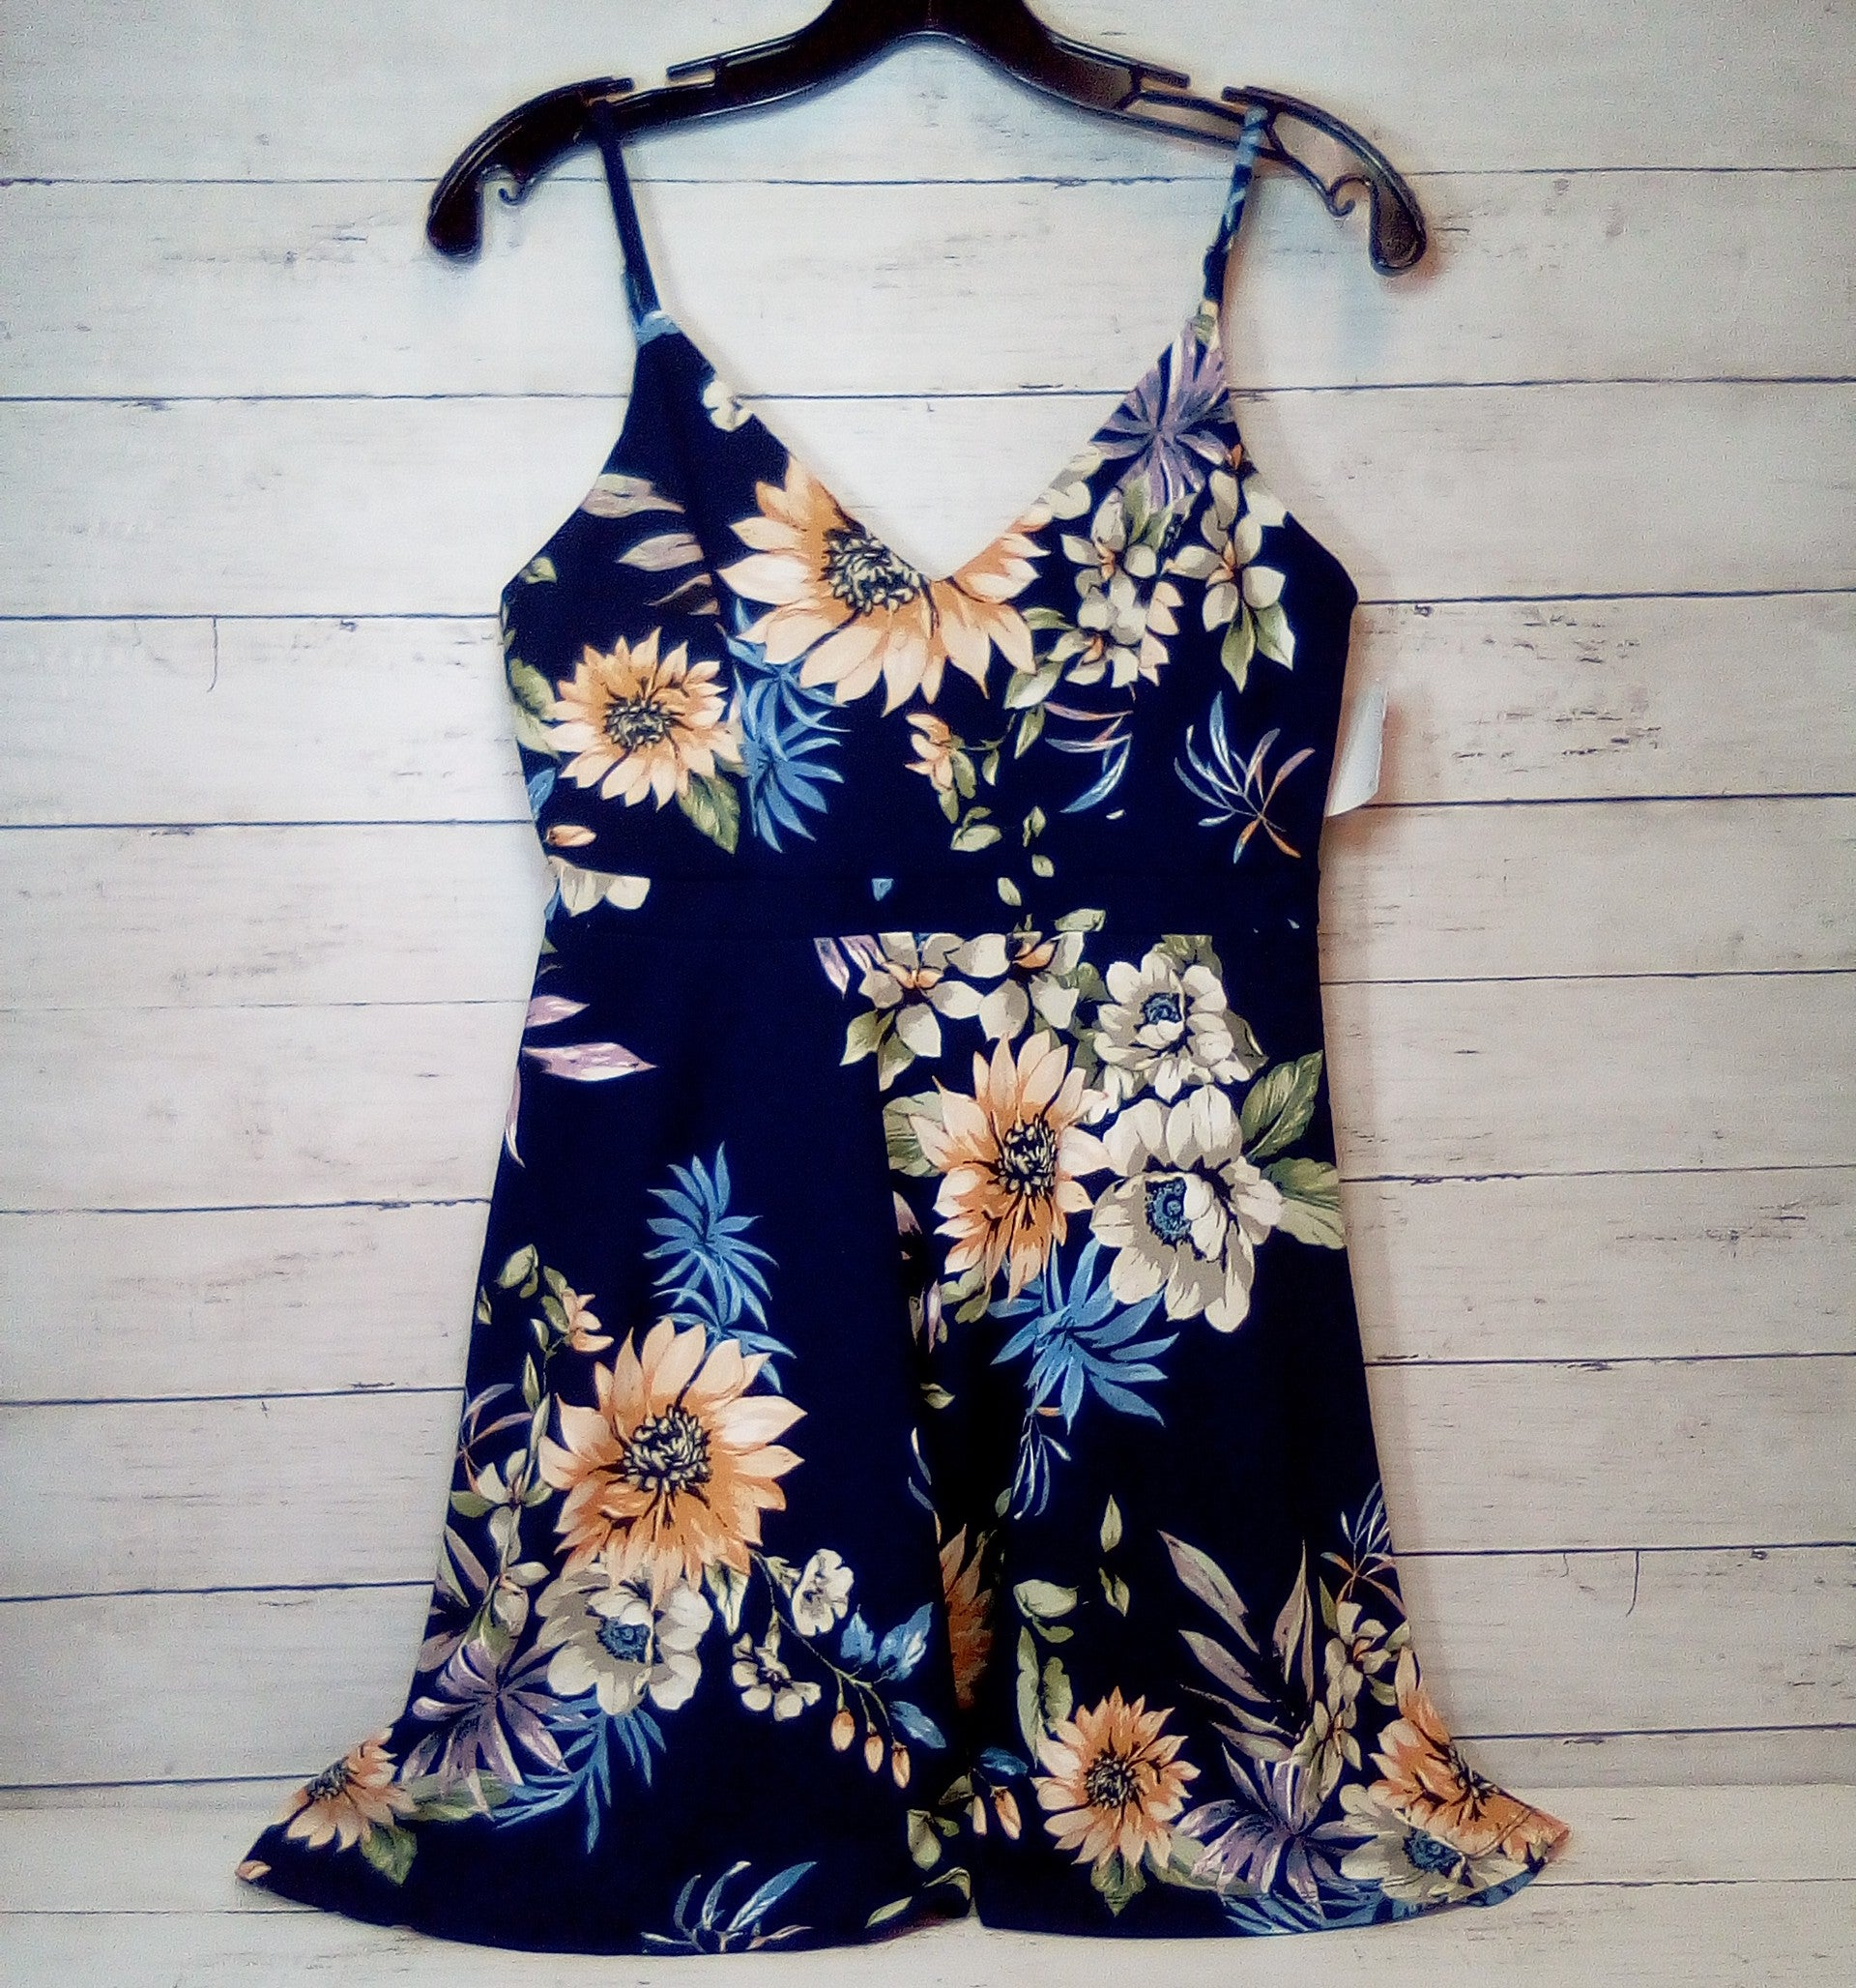 Primary Photo - BRAND: IJOAH<BR>STYLE: DRESS SHORT SLEEVELESS <BR>COLOR: FLORAL <BR>SIZE: M <BR>OTHER INFO: NEW! NAVY BASE <BR>SKU: 216-21638-65116